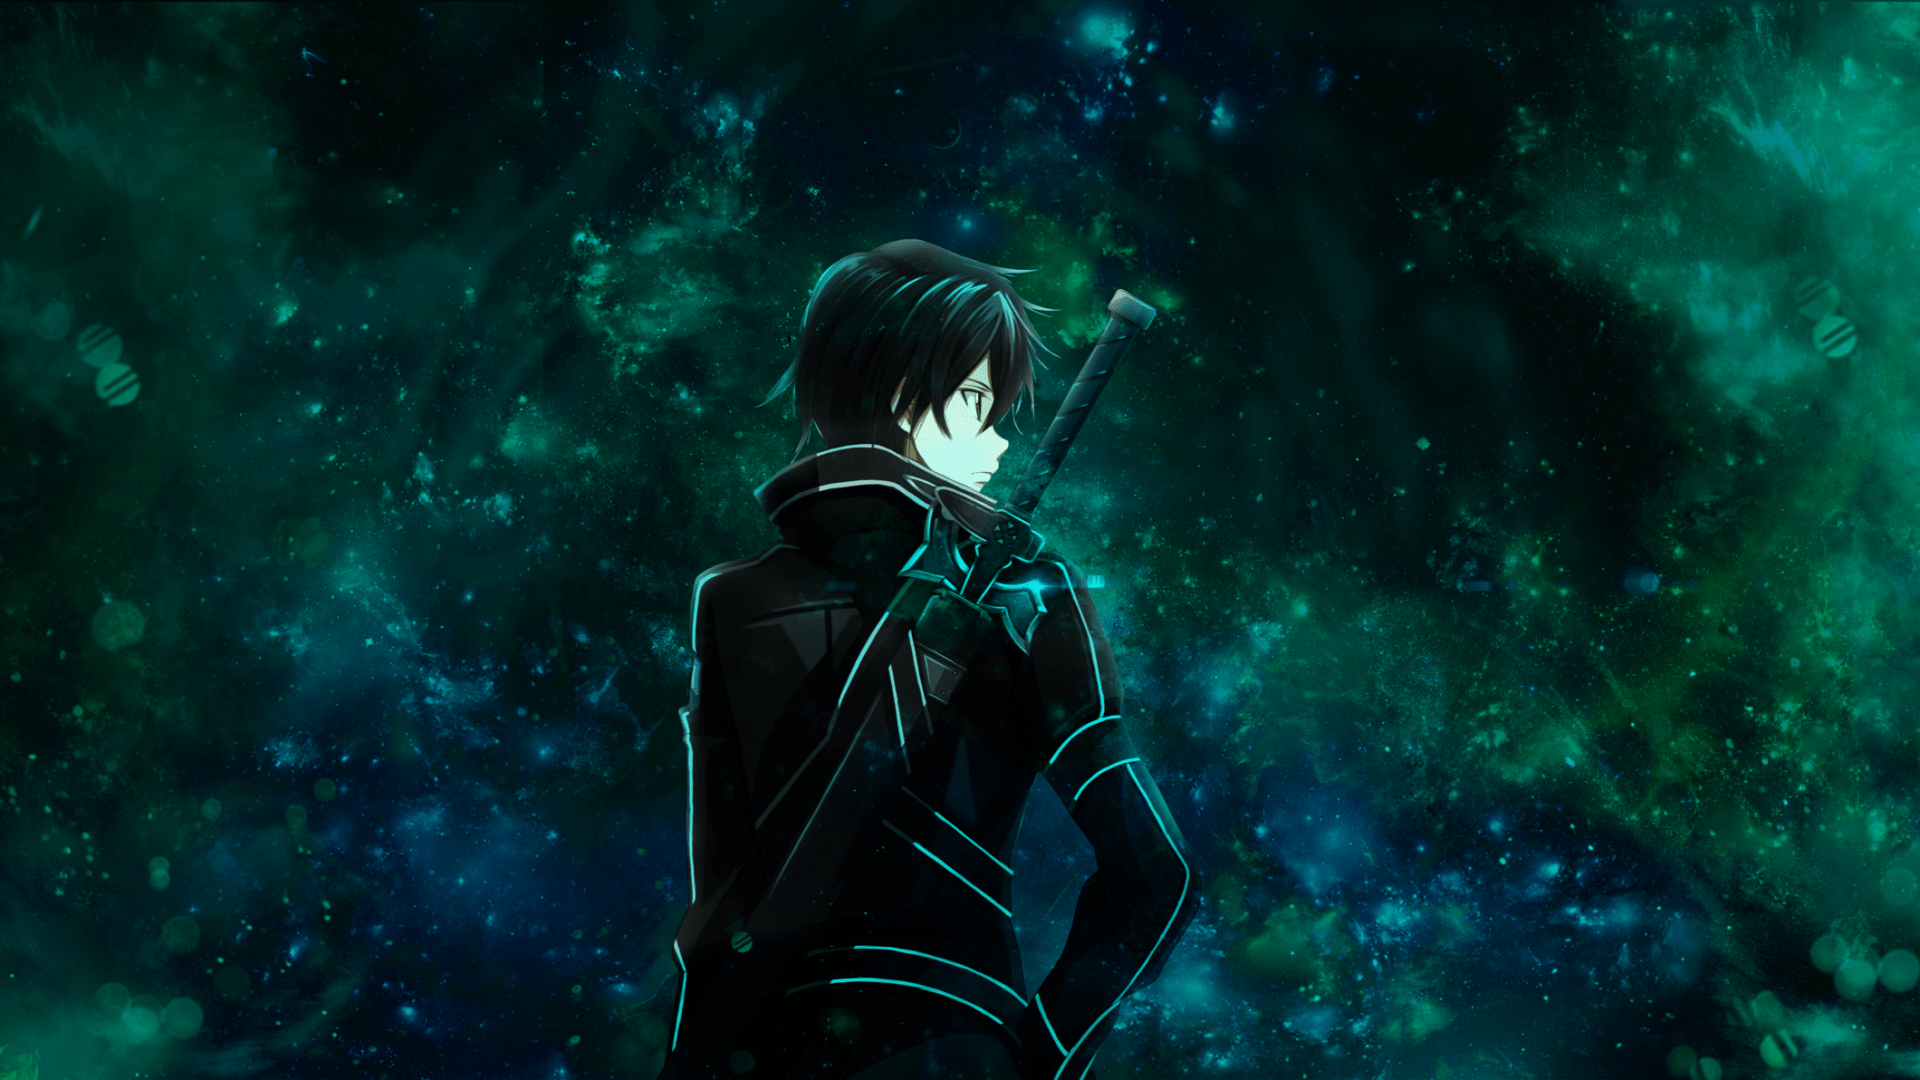 Sick Wallpapers For Iphone 5 Sword Art Online Full Hd Wallpaper And Background Image